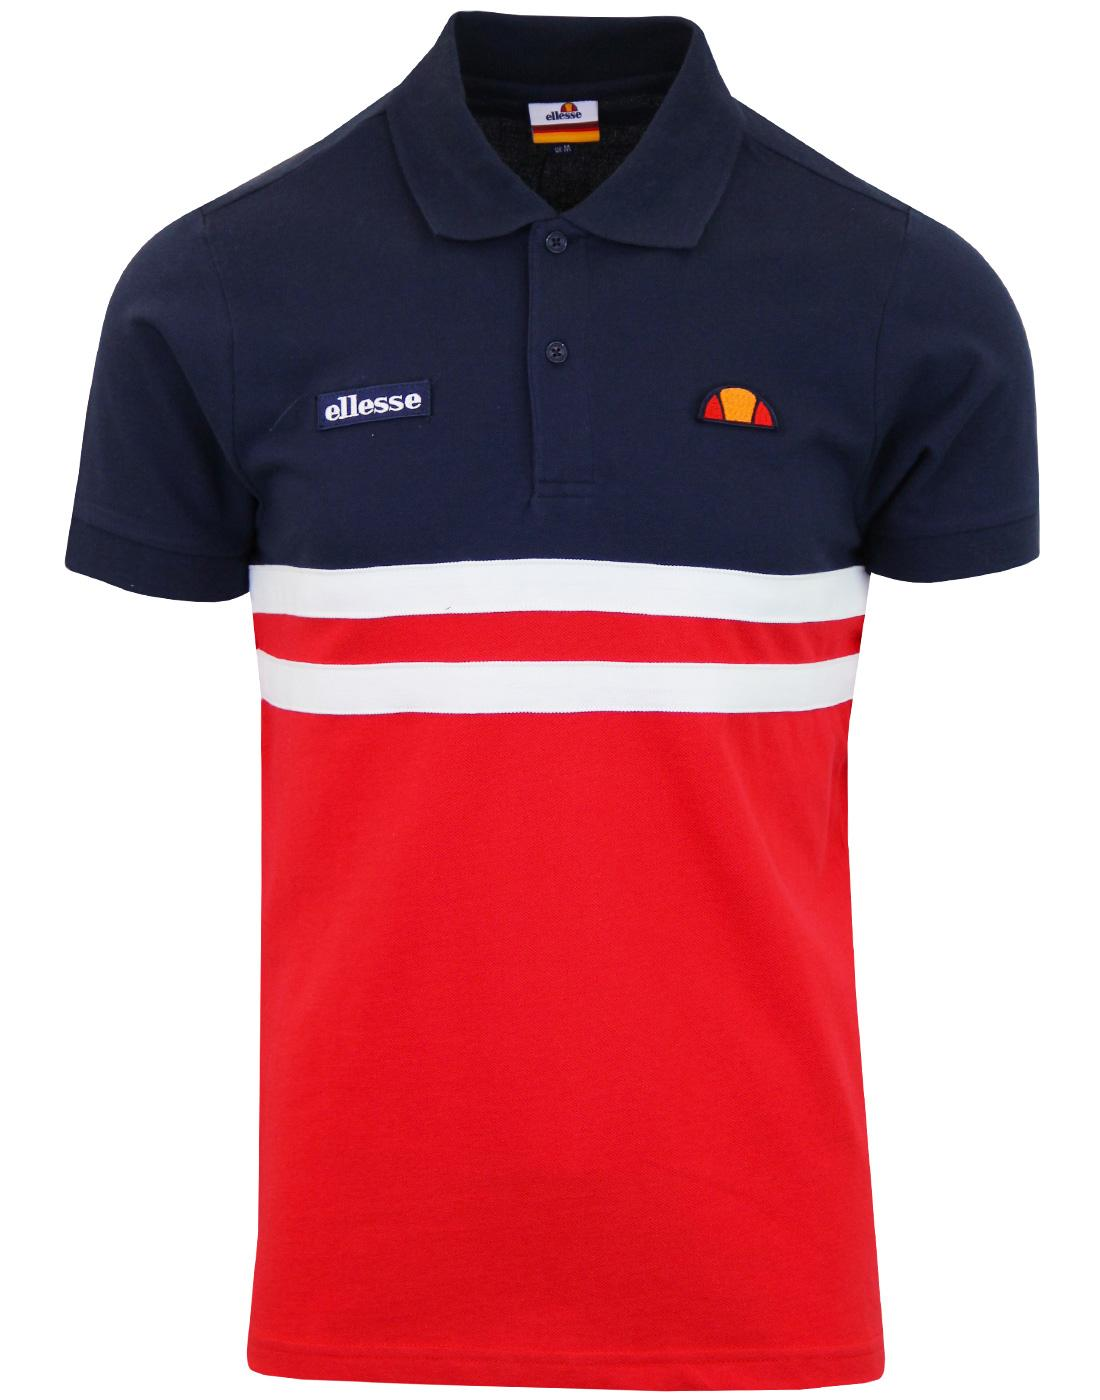 Timini ELLESSE Retro 80s Casuals Pique Polo Shirt